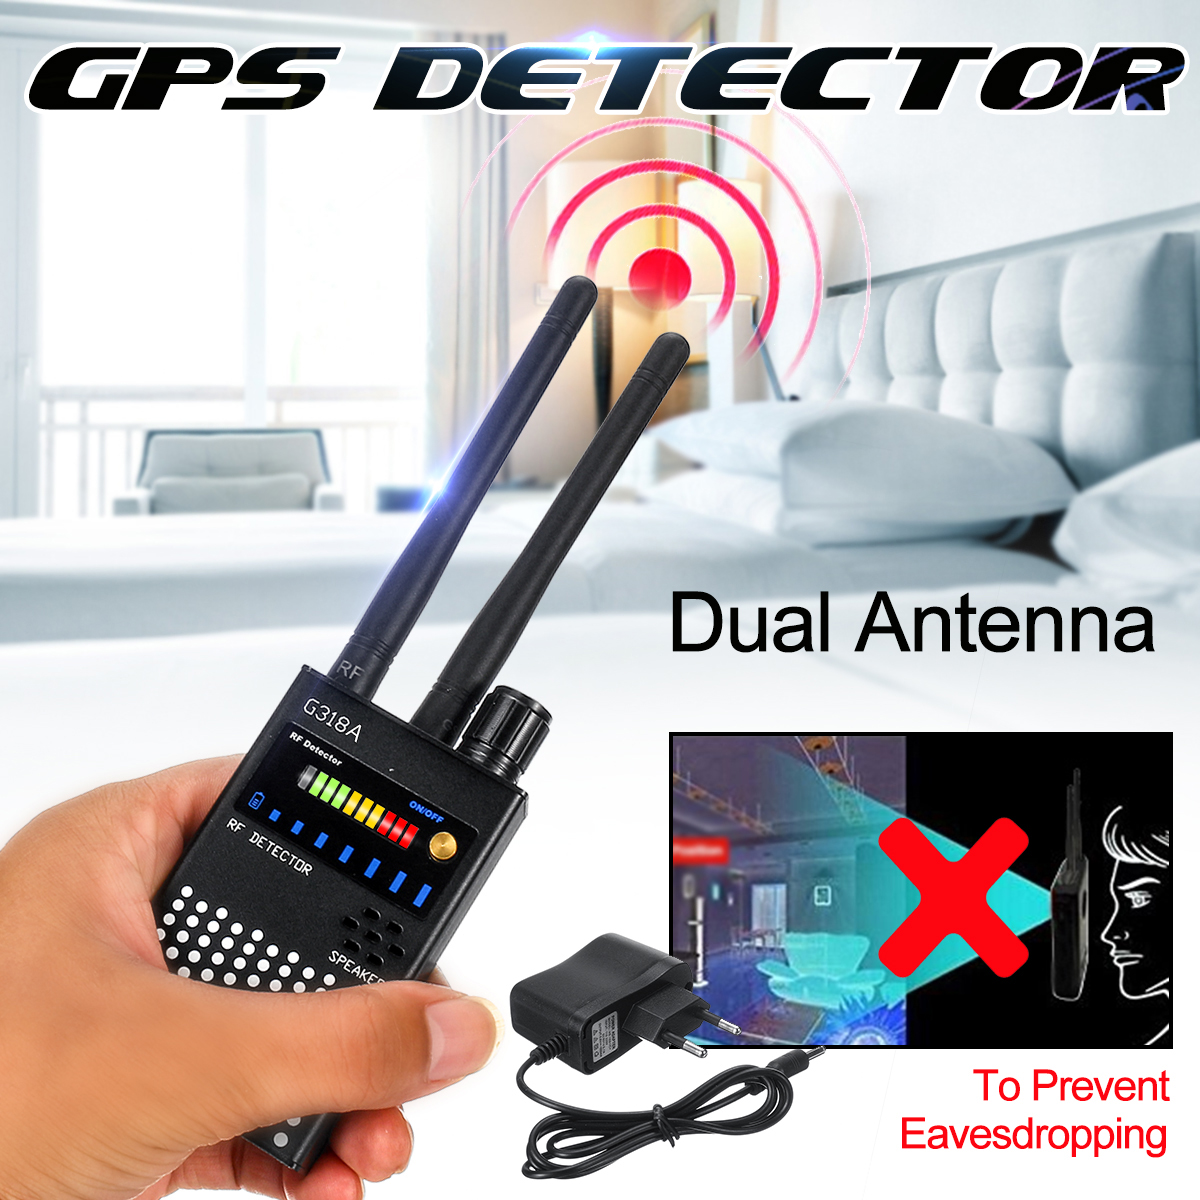 G-318A 1MHz Dual Antenna 8000MHz Anti-Spy Bug Detector Wireless RF GPS Location Dual Signal Device Finder Privacy Protect